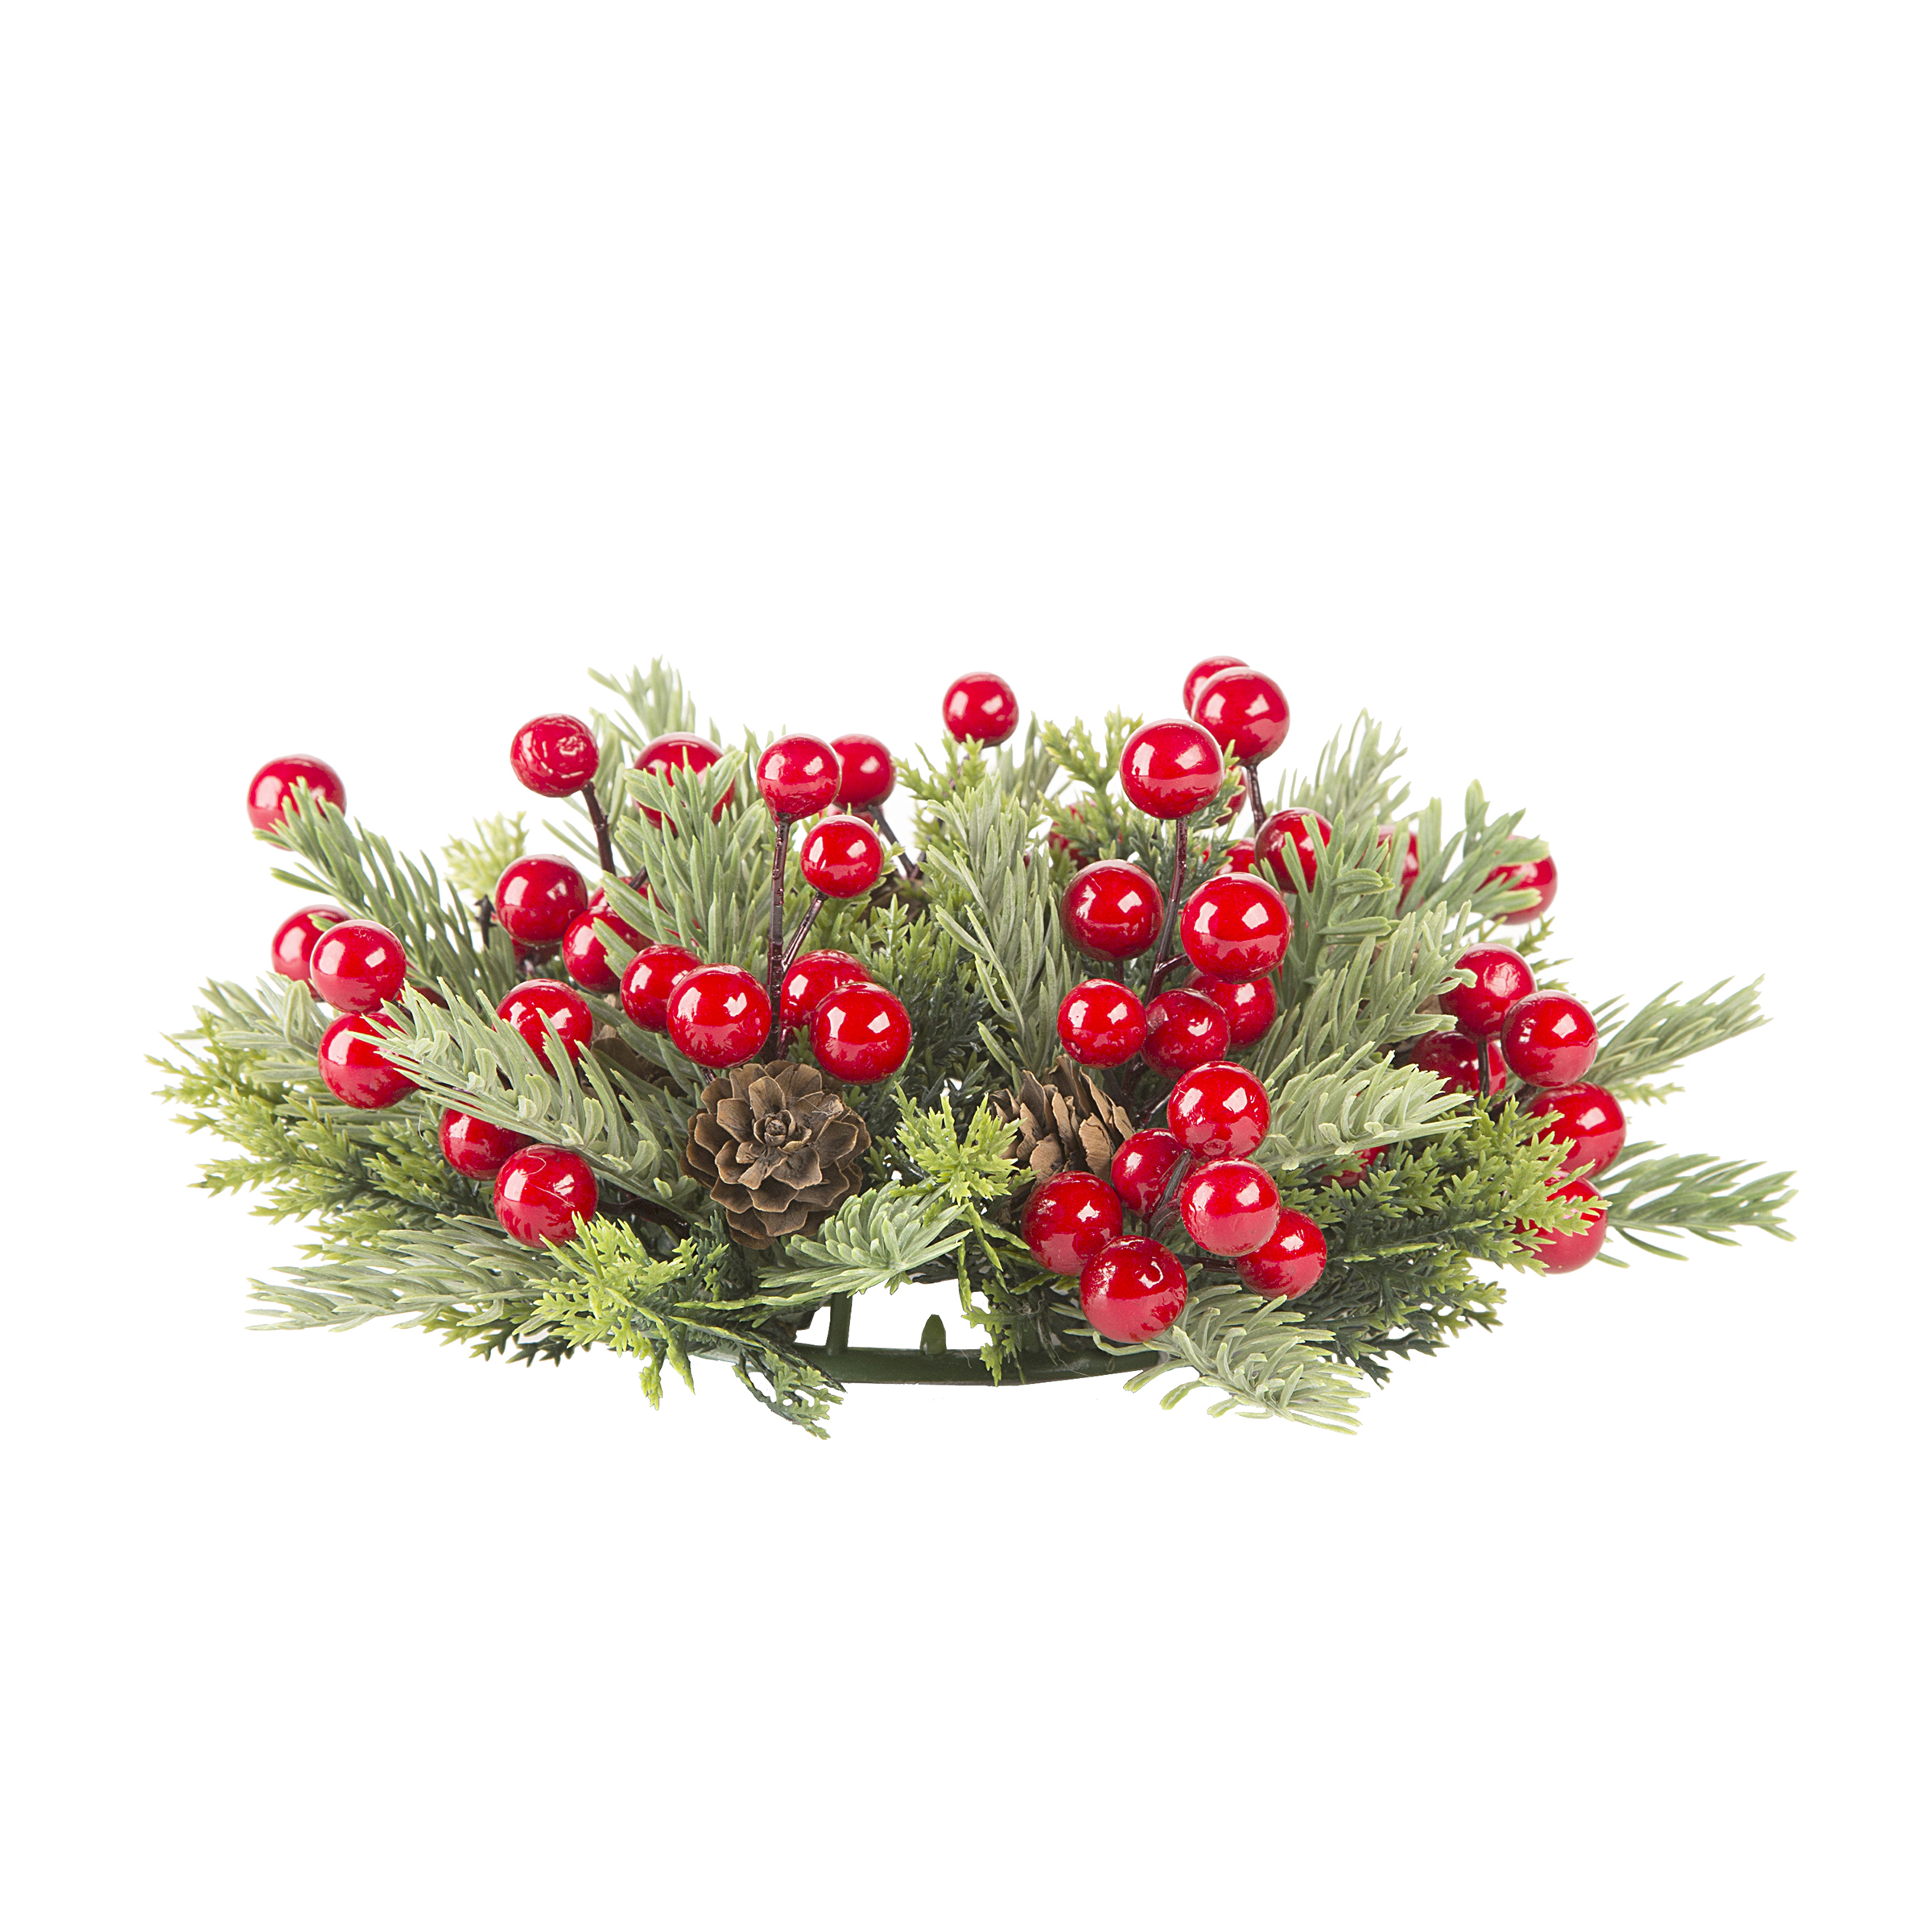 Darice Christmas Pine and Berry Candle Ring Foam and Plastic 3 Inches